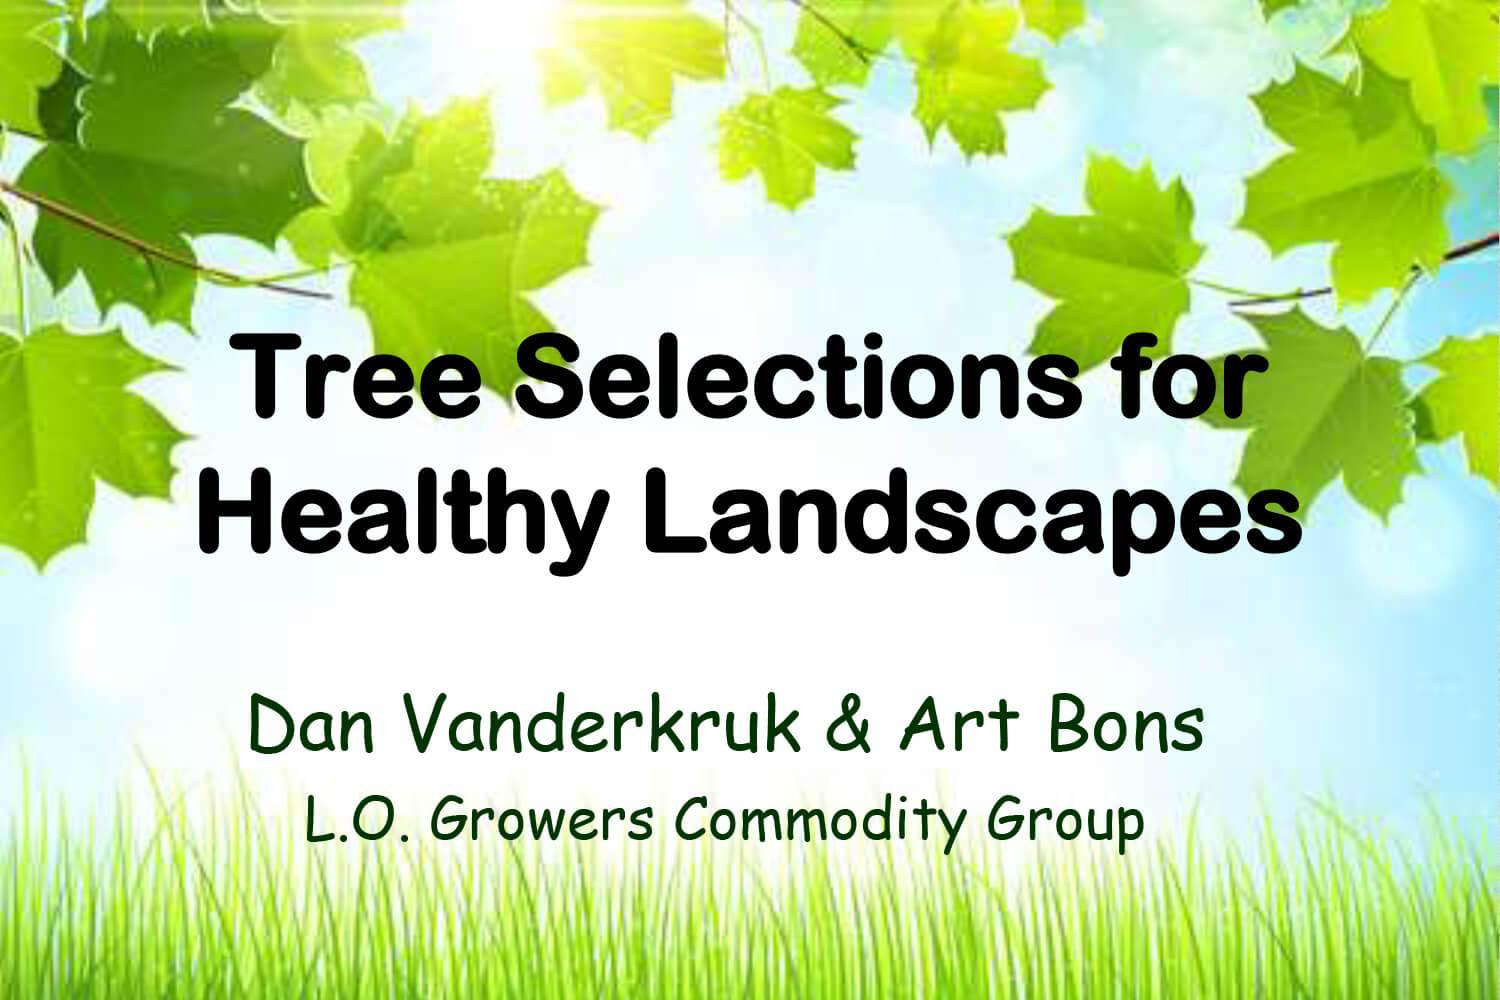 Tree Selections for Healthy Landscapes